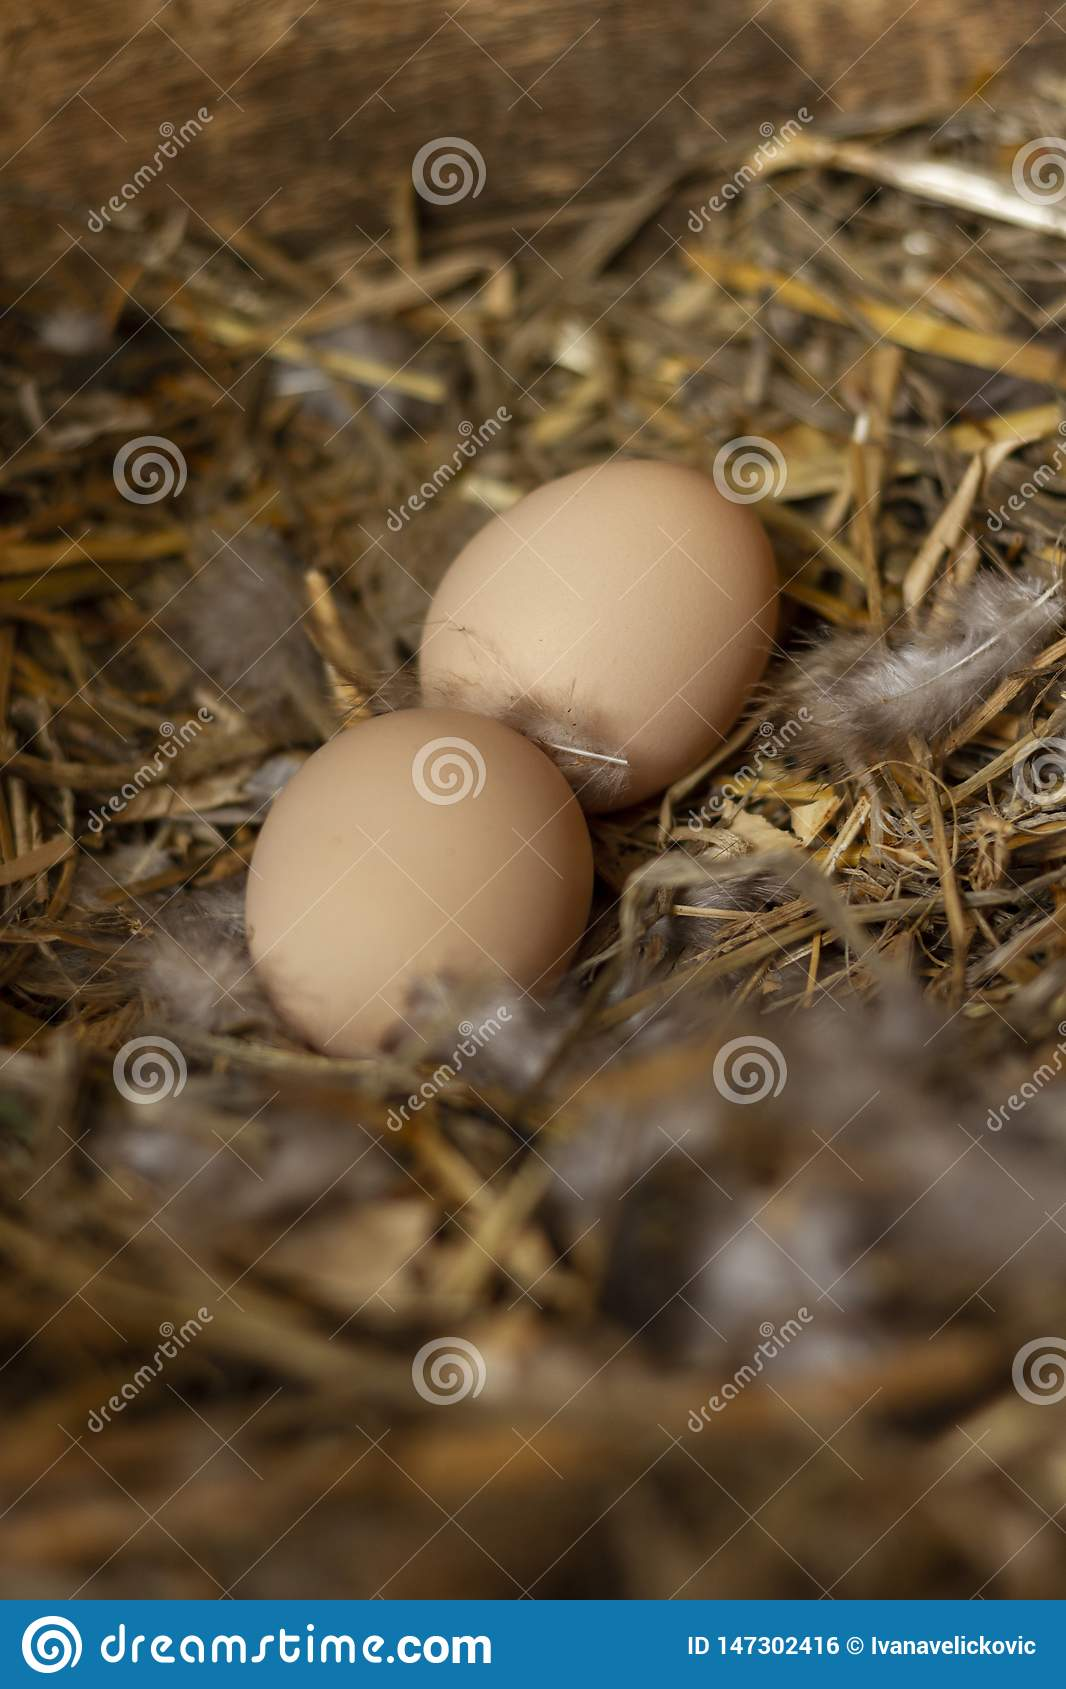 Two freerange chicken eggs in a nest with feathers